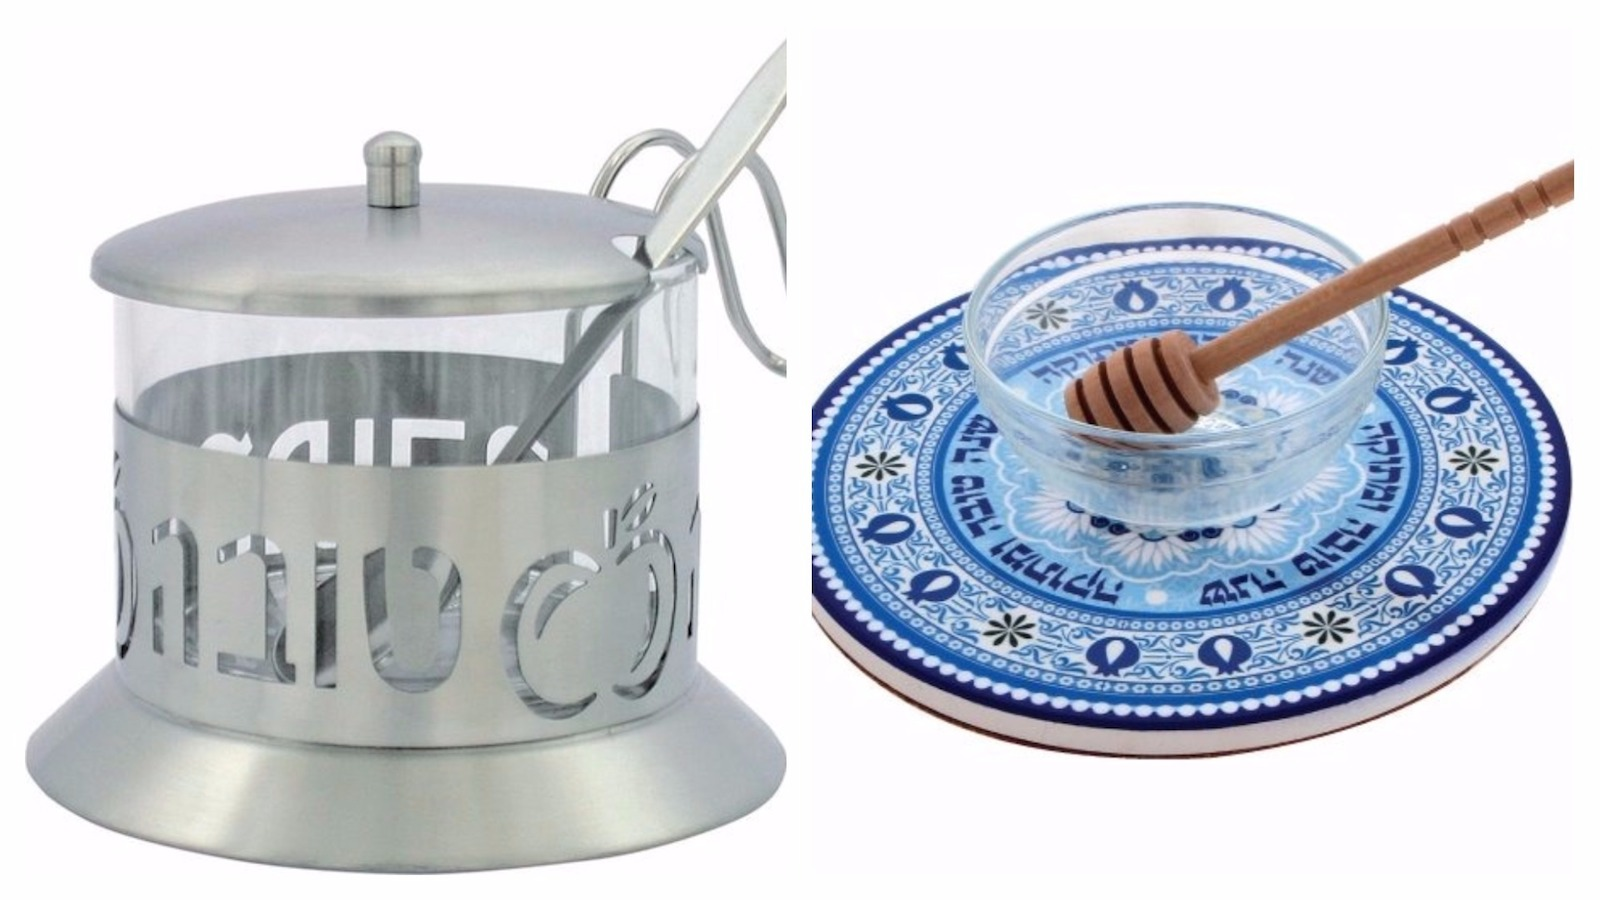 Rosh hashanah gift guide my jewish learning it is traditional to dip apples in honey on rosh hashanah and a special honey dish can add extra beauty to the practice we like this stainless steel and kristyandbryce Images